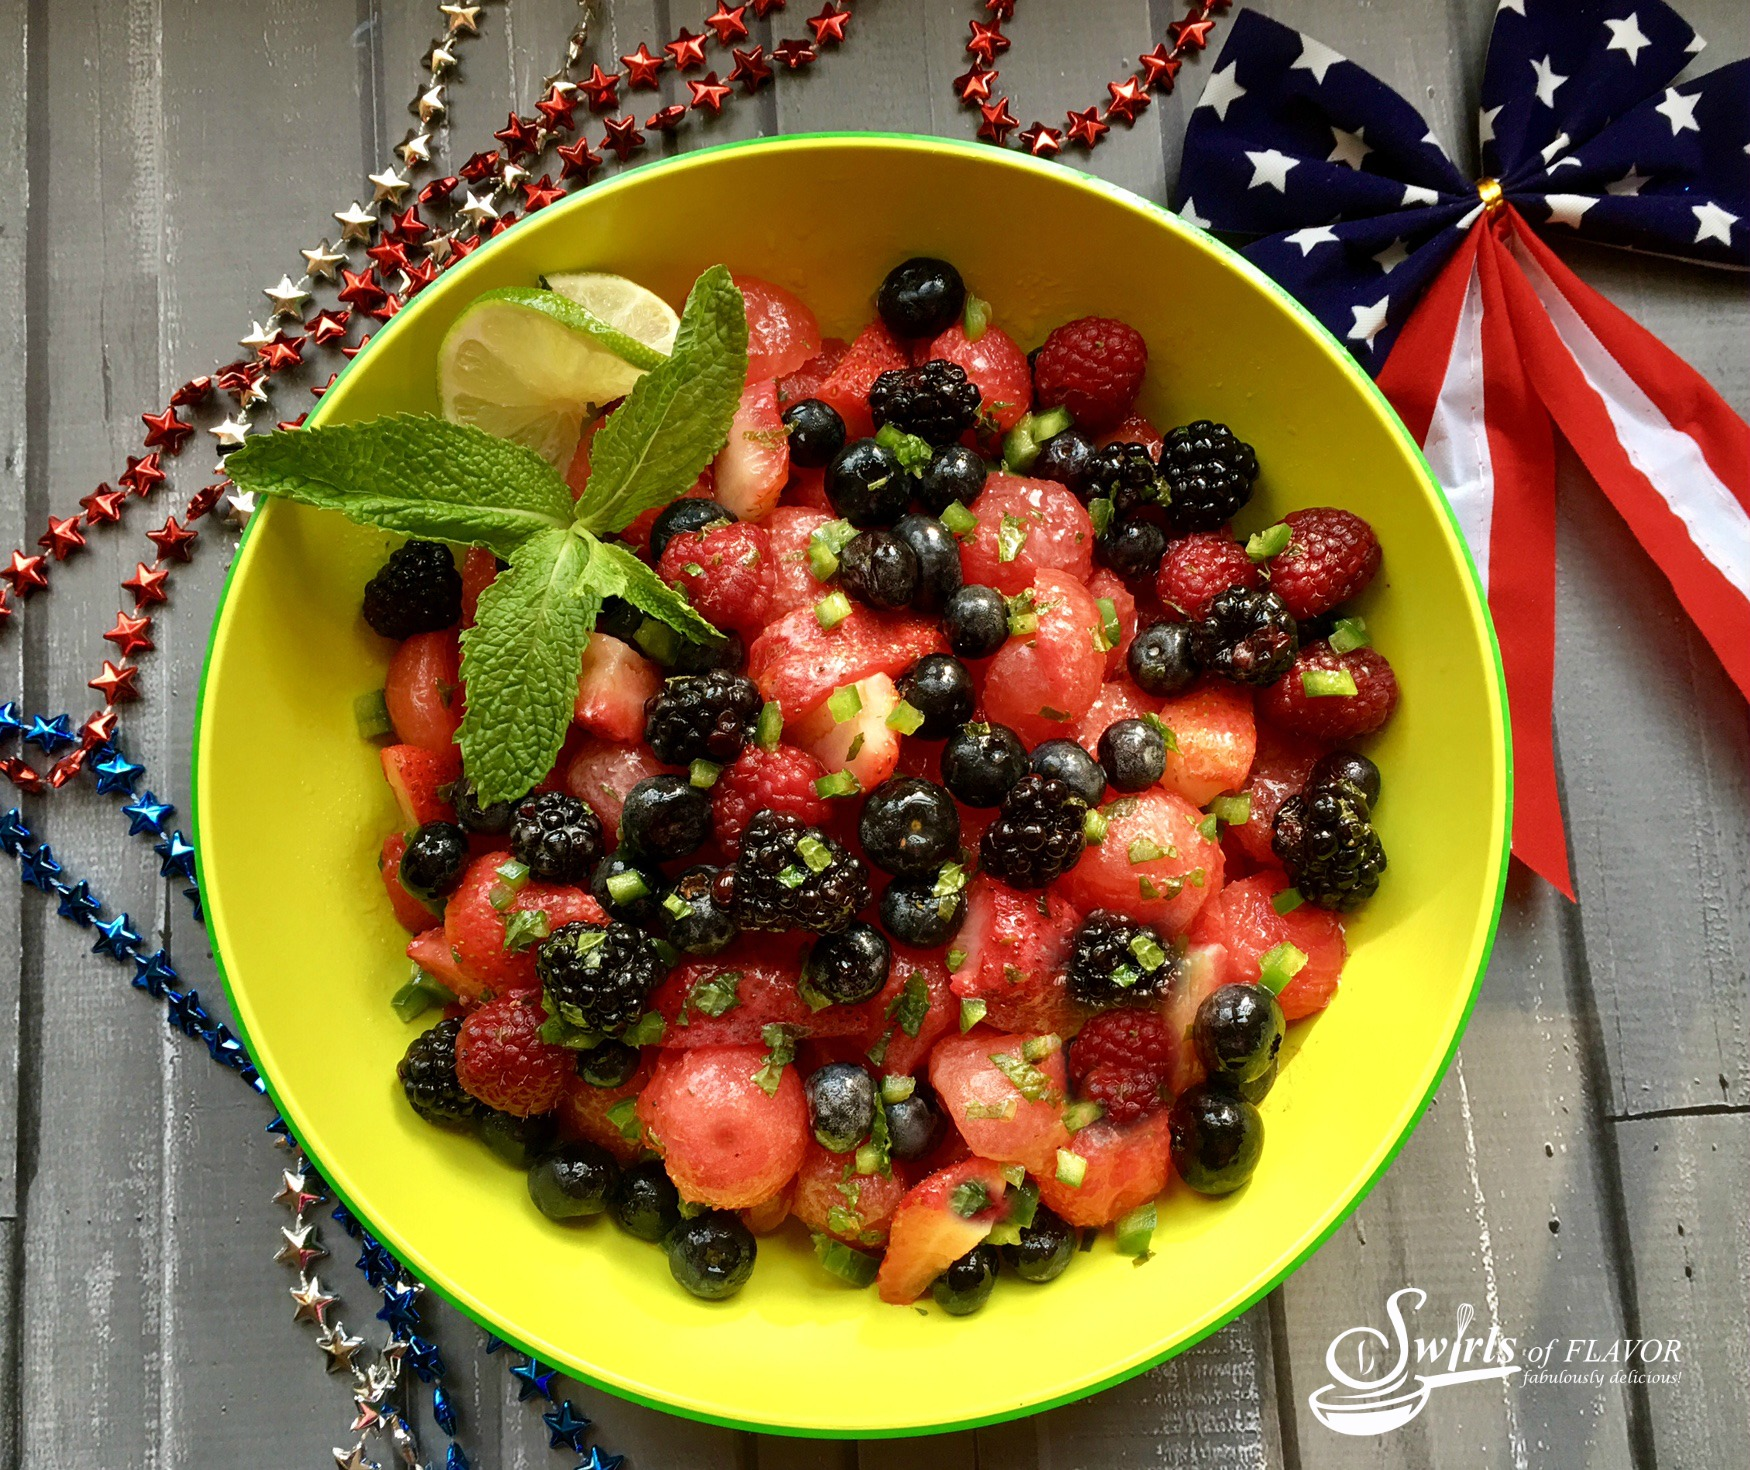 Jsummer fruit salad with watermelon, berries and fresh mint in a colorful bowl